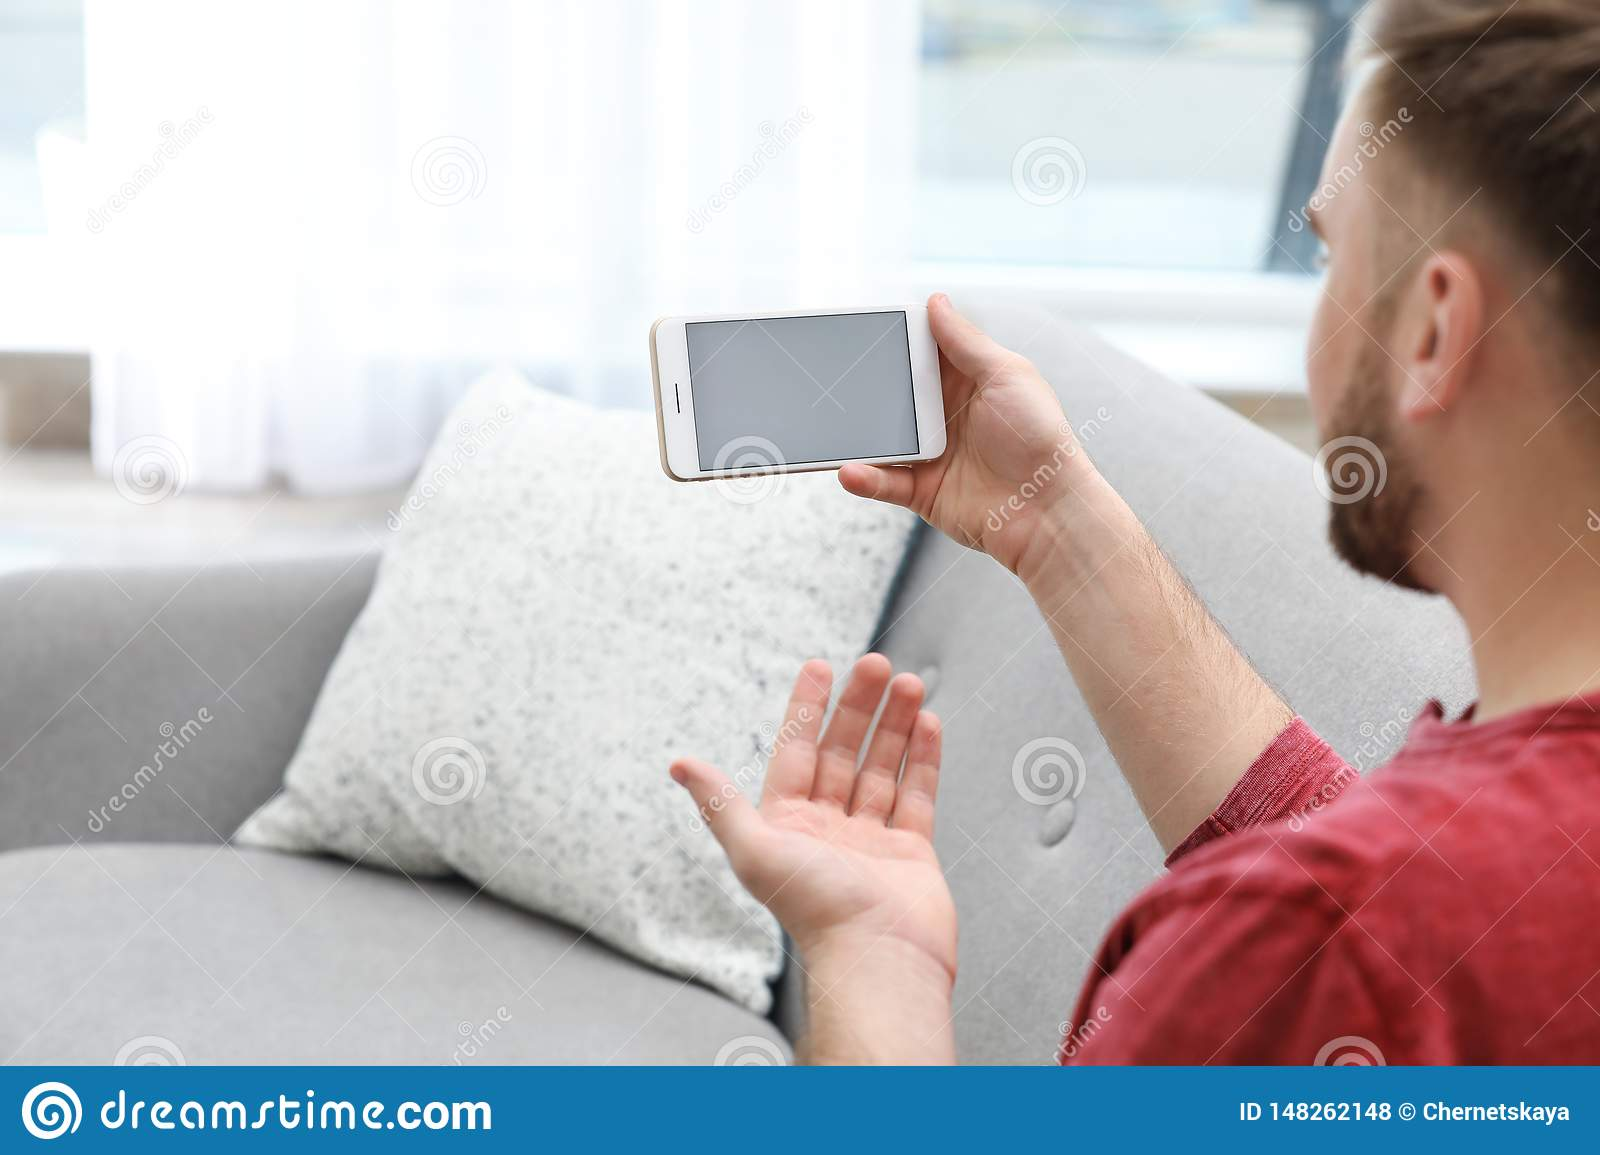 Smartphone chat rooms